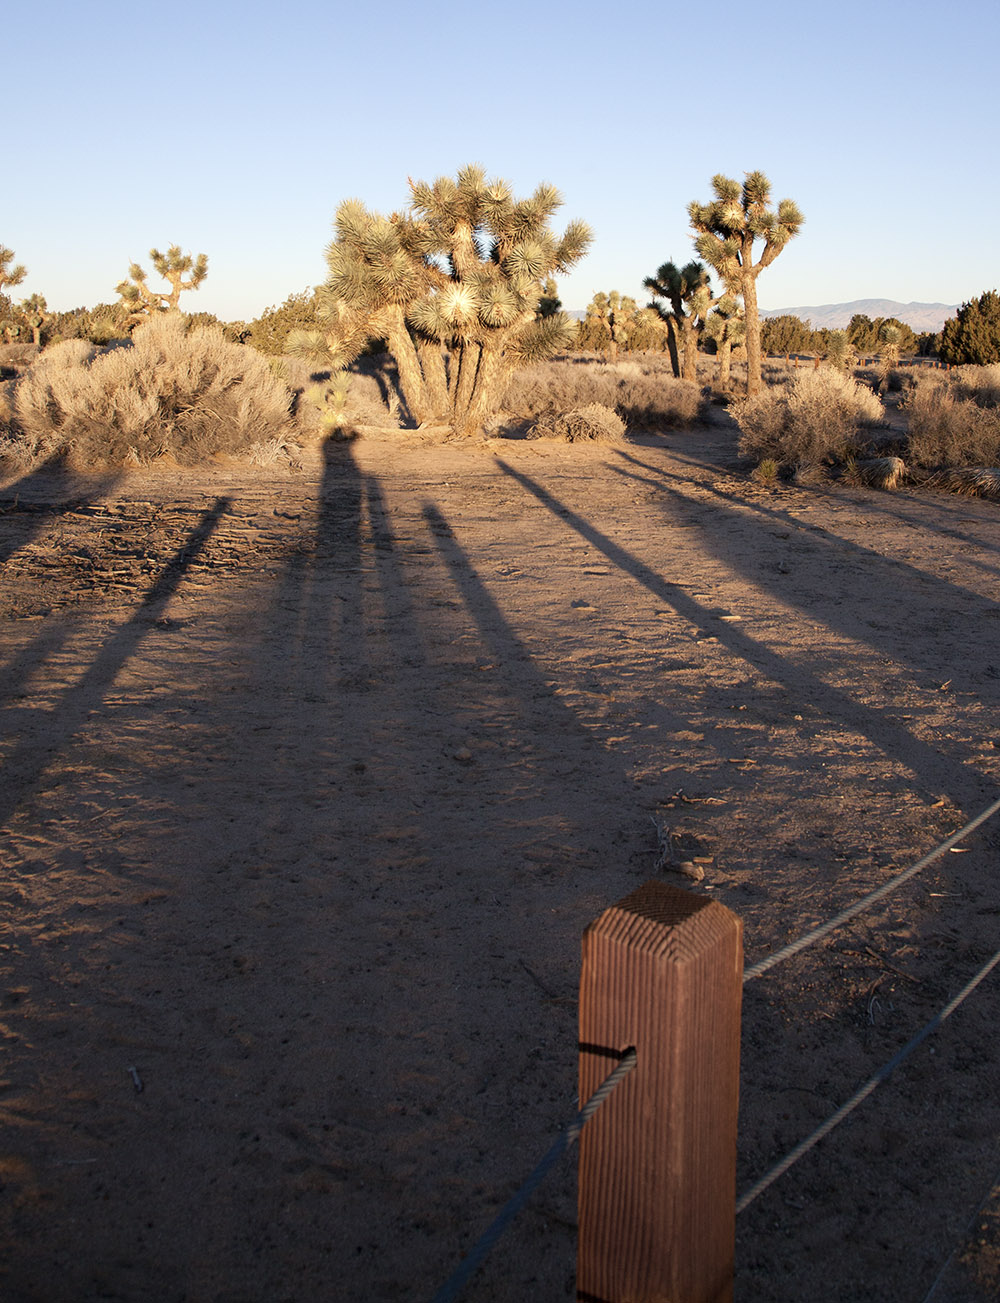 As the sun came up, the shadows stretched across the desert preserve, capturing me in the act of recording the beauty.